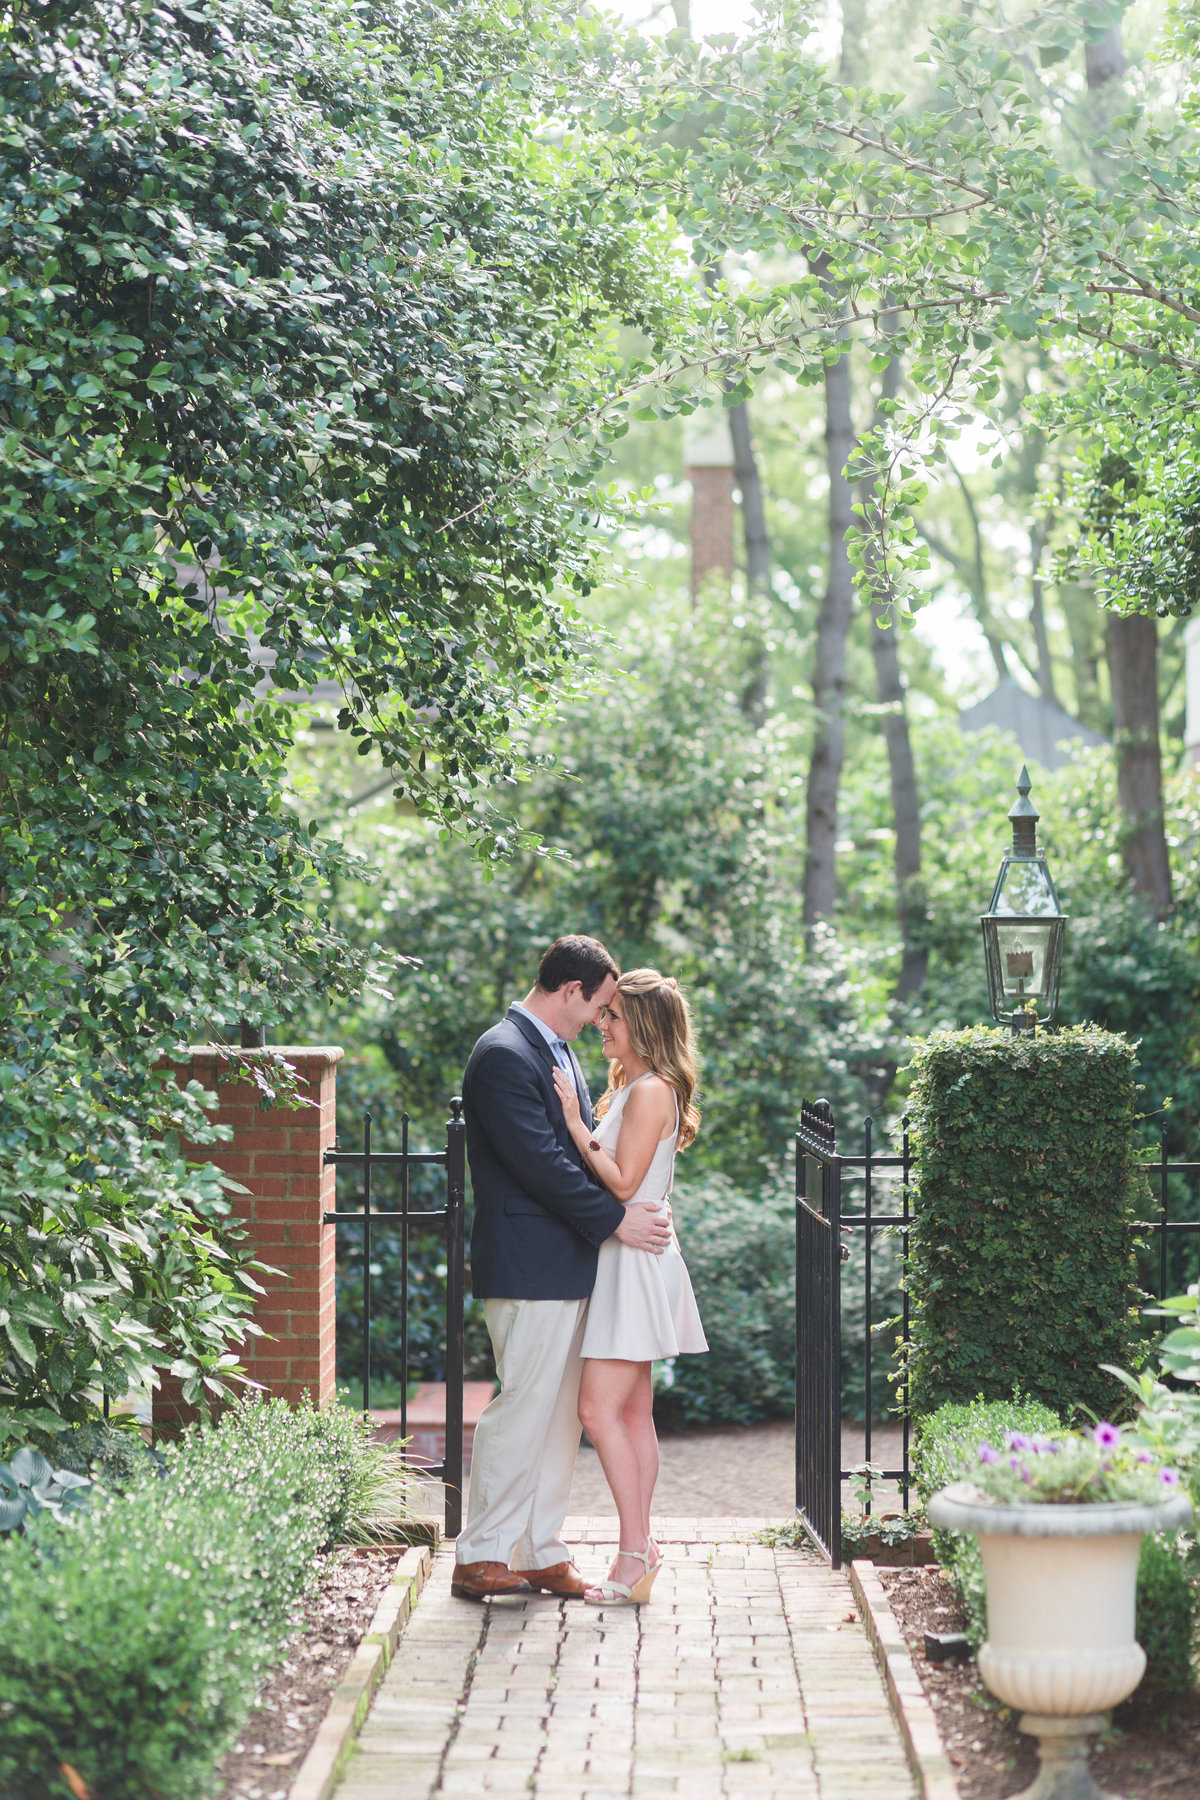 Noelle and Gregg Engaged-Samantha Laffoon Photography-90